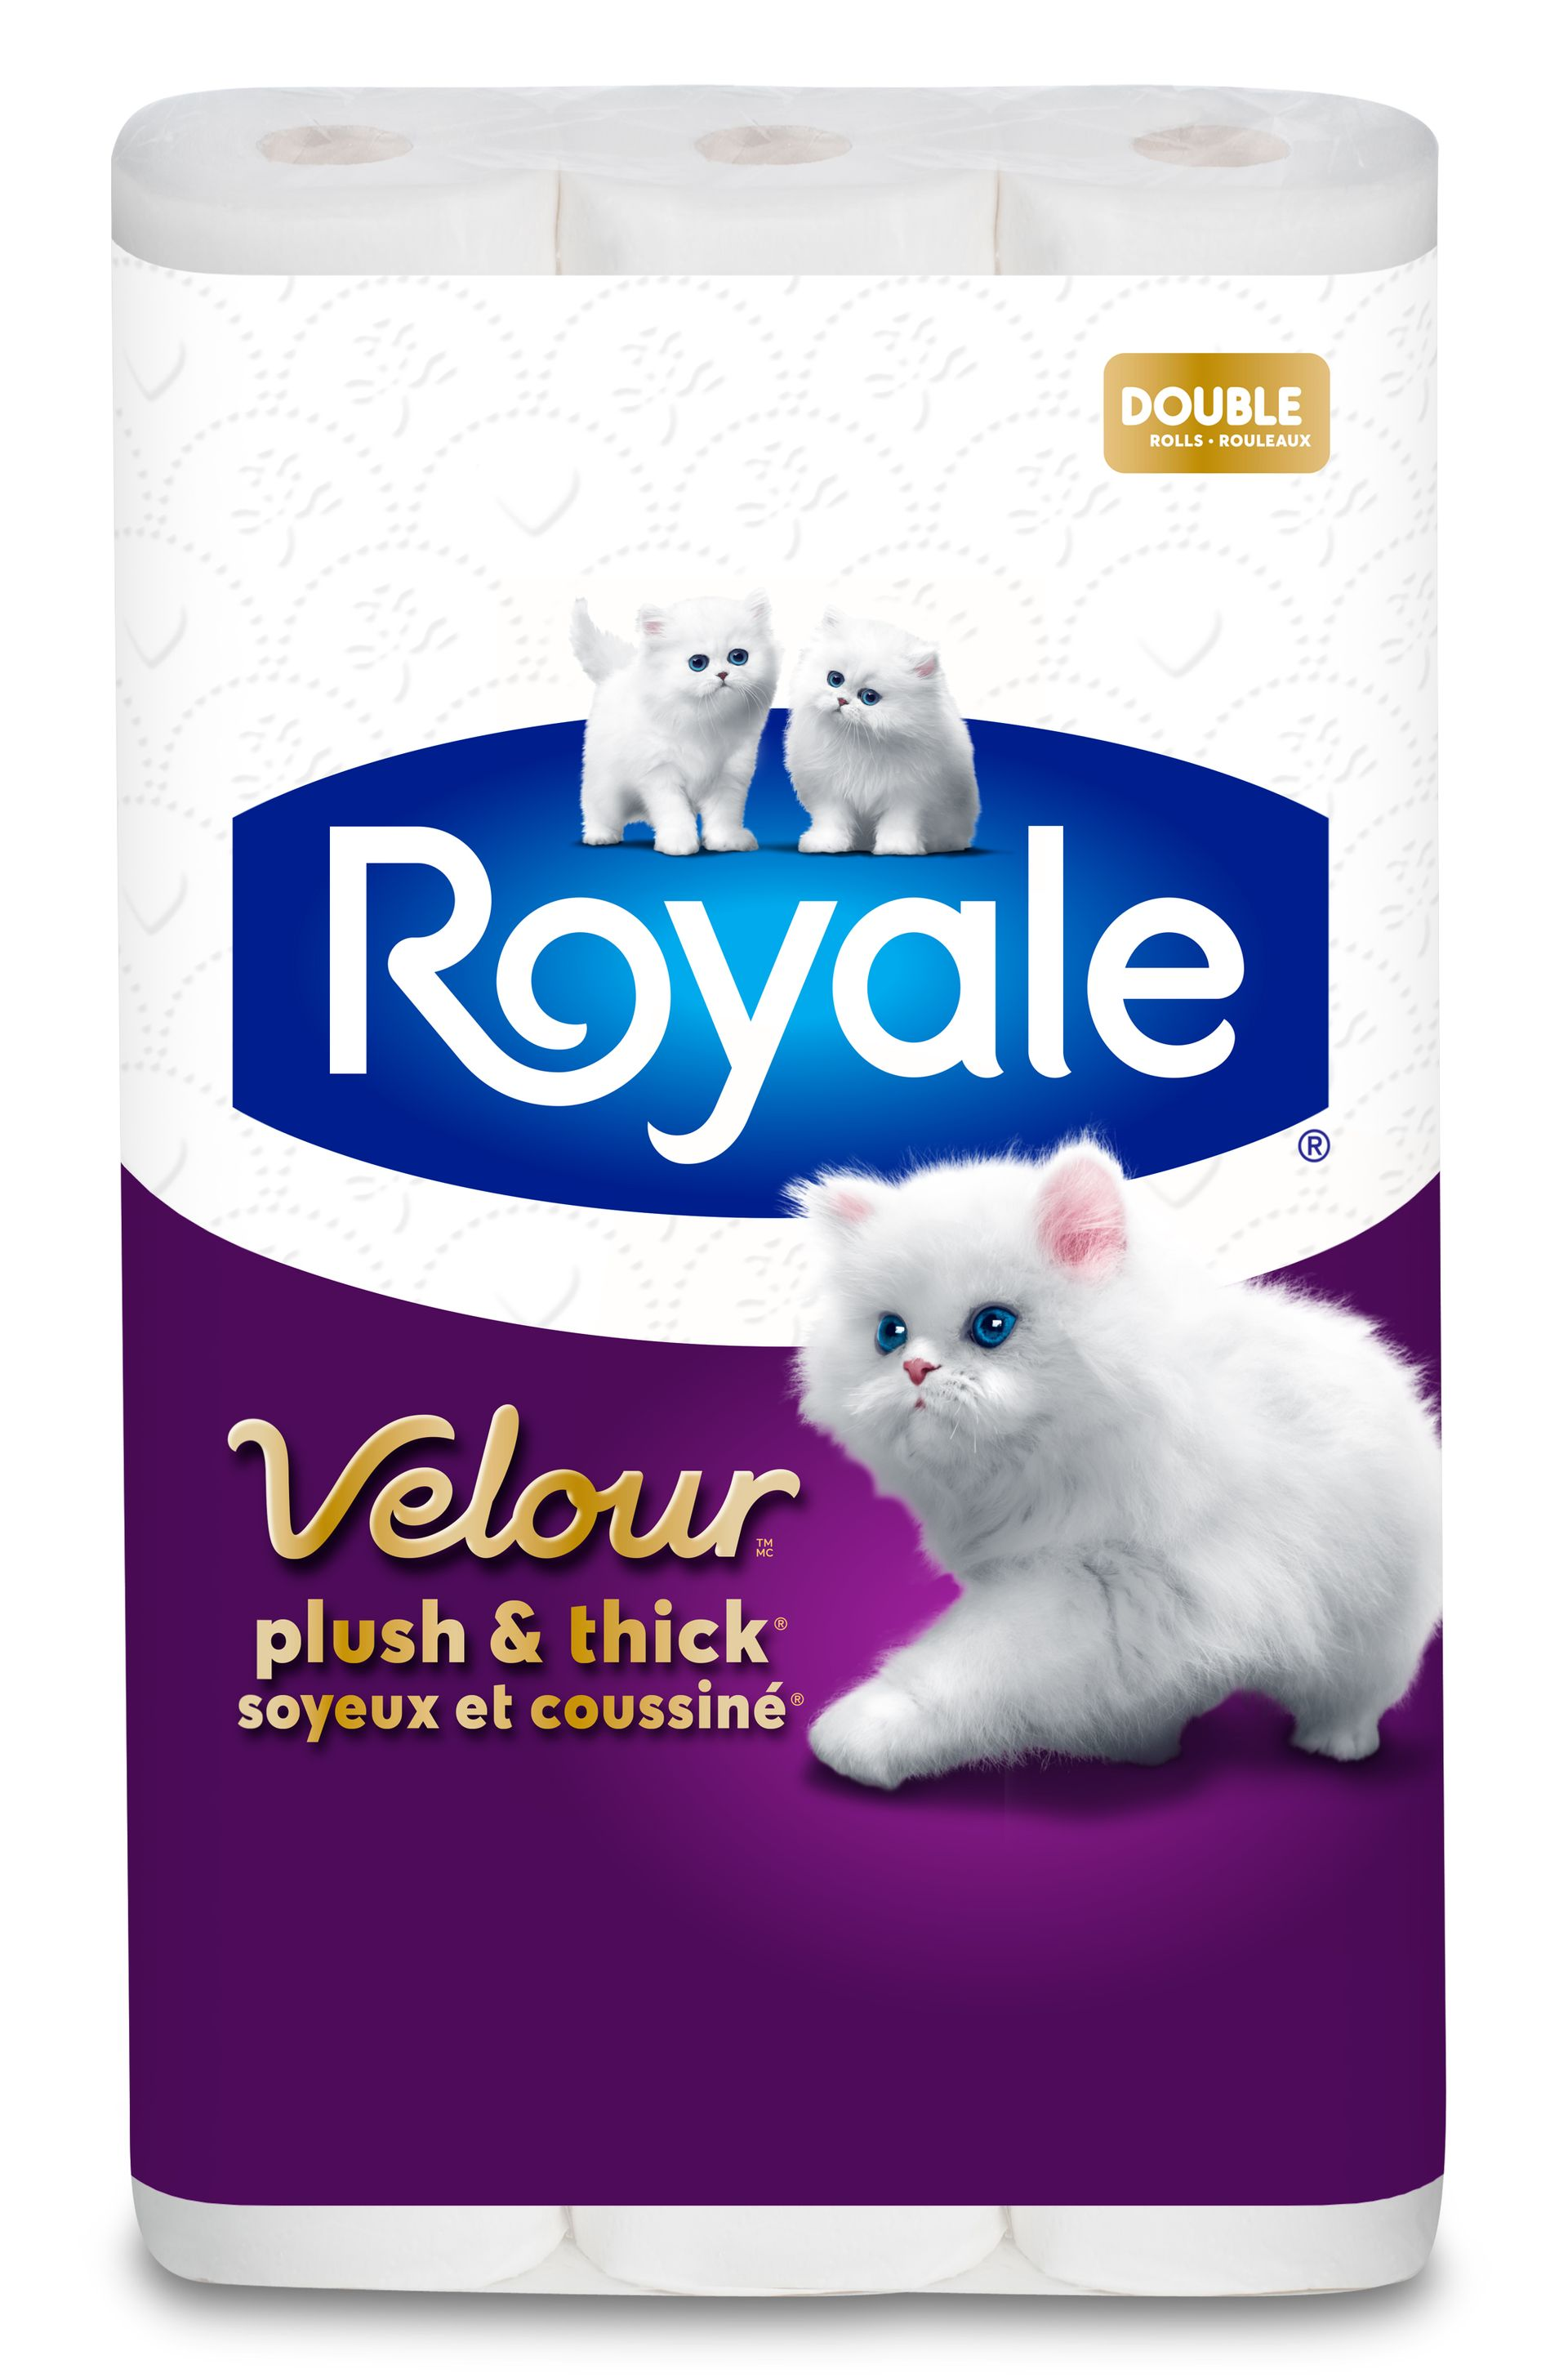 ROYALE® Velour®, rouleaux doubles pack